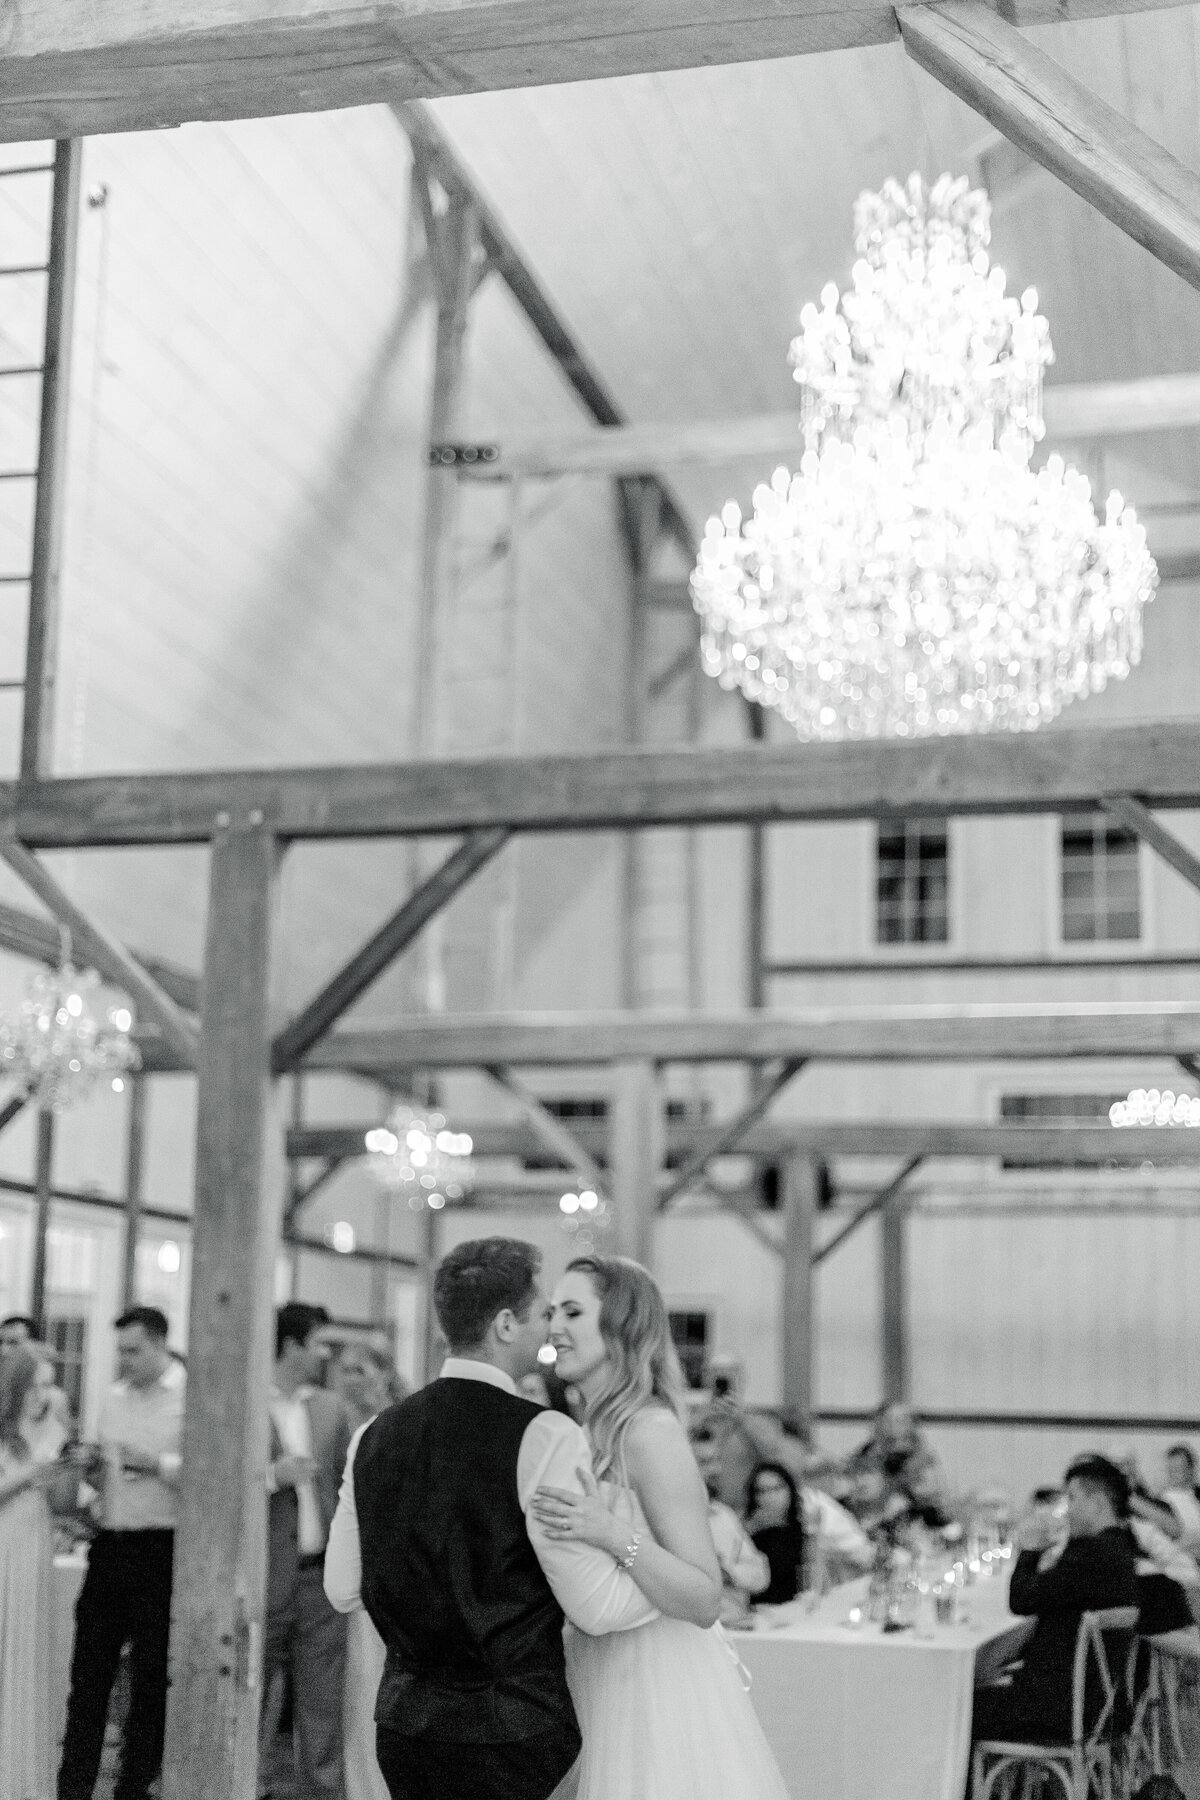 Stonefields-weddings-events-beckwith-wedding-light-airy-grey-loft-studio-93